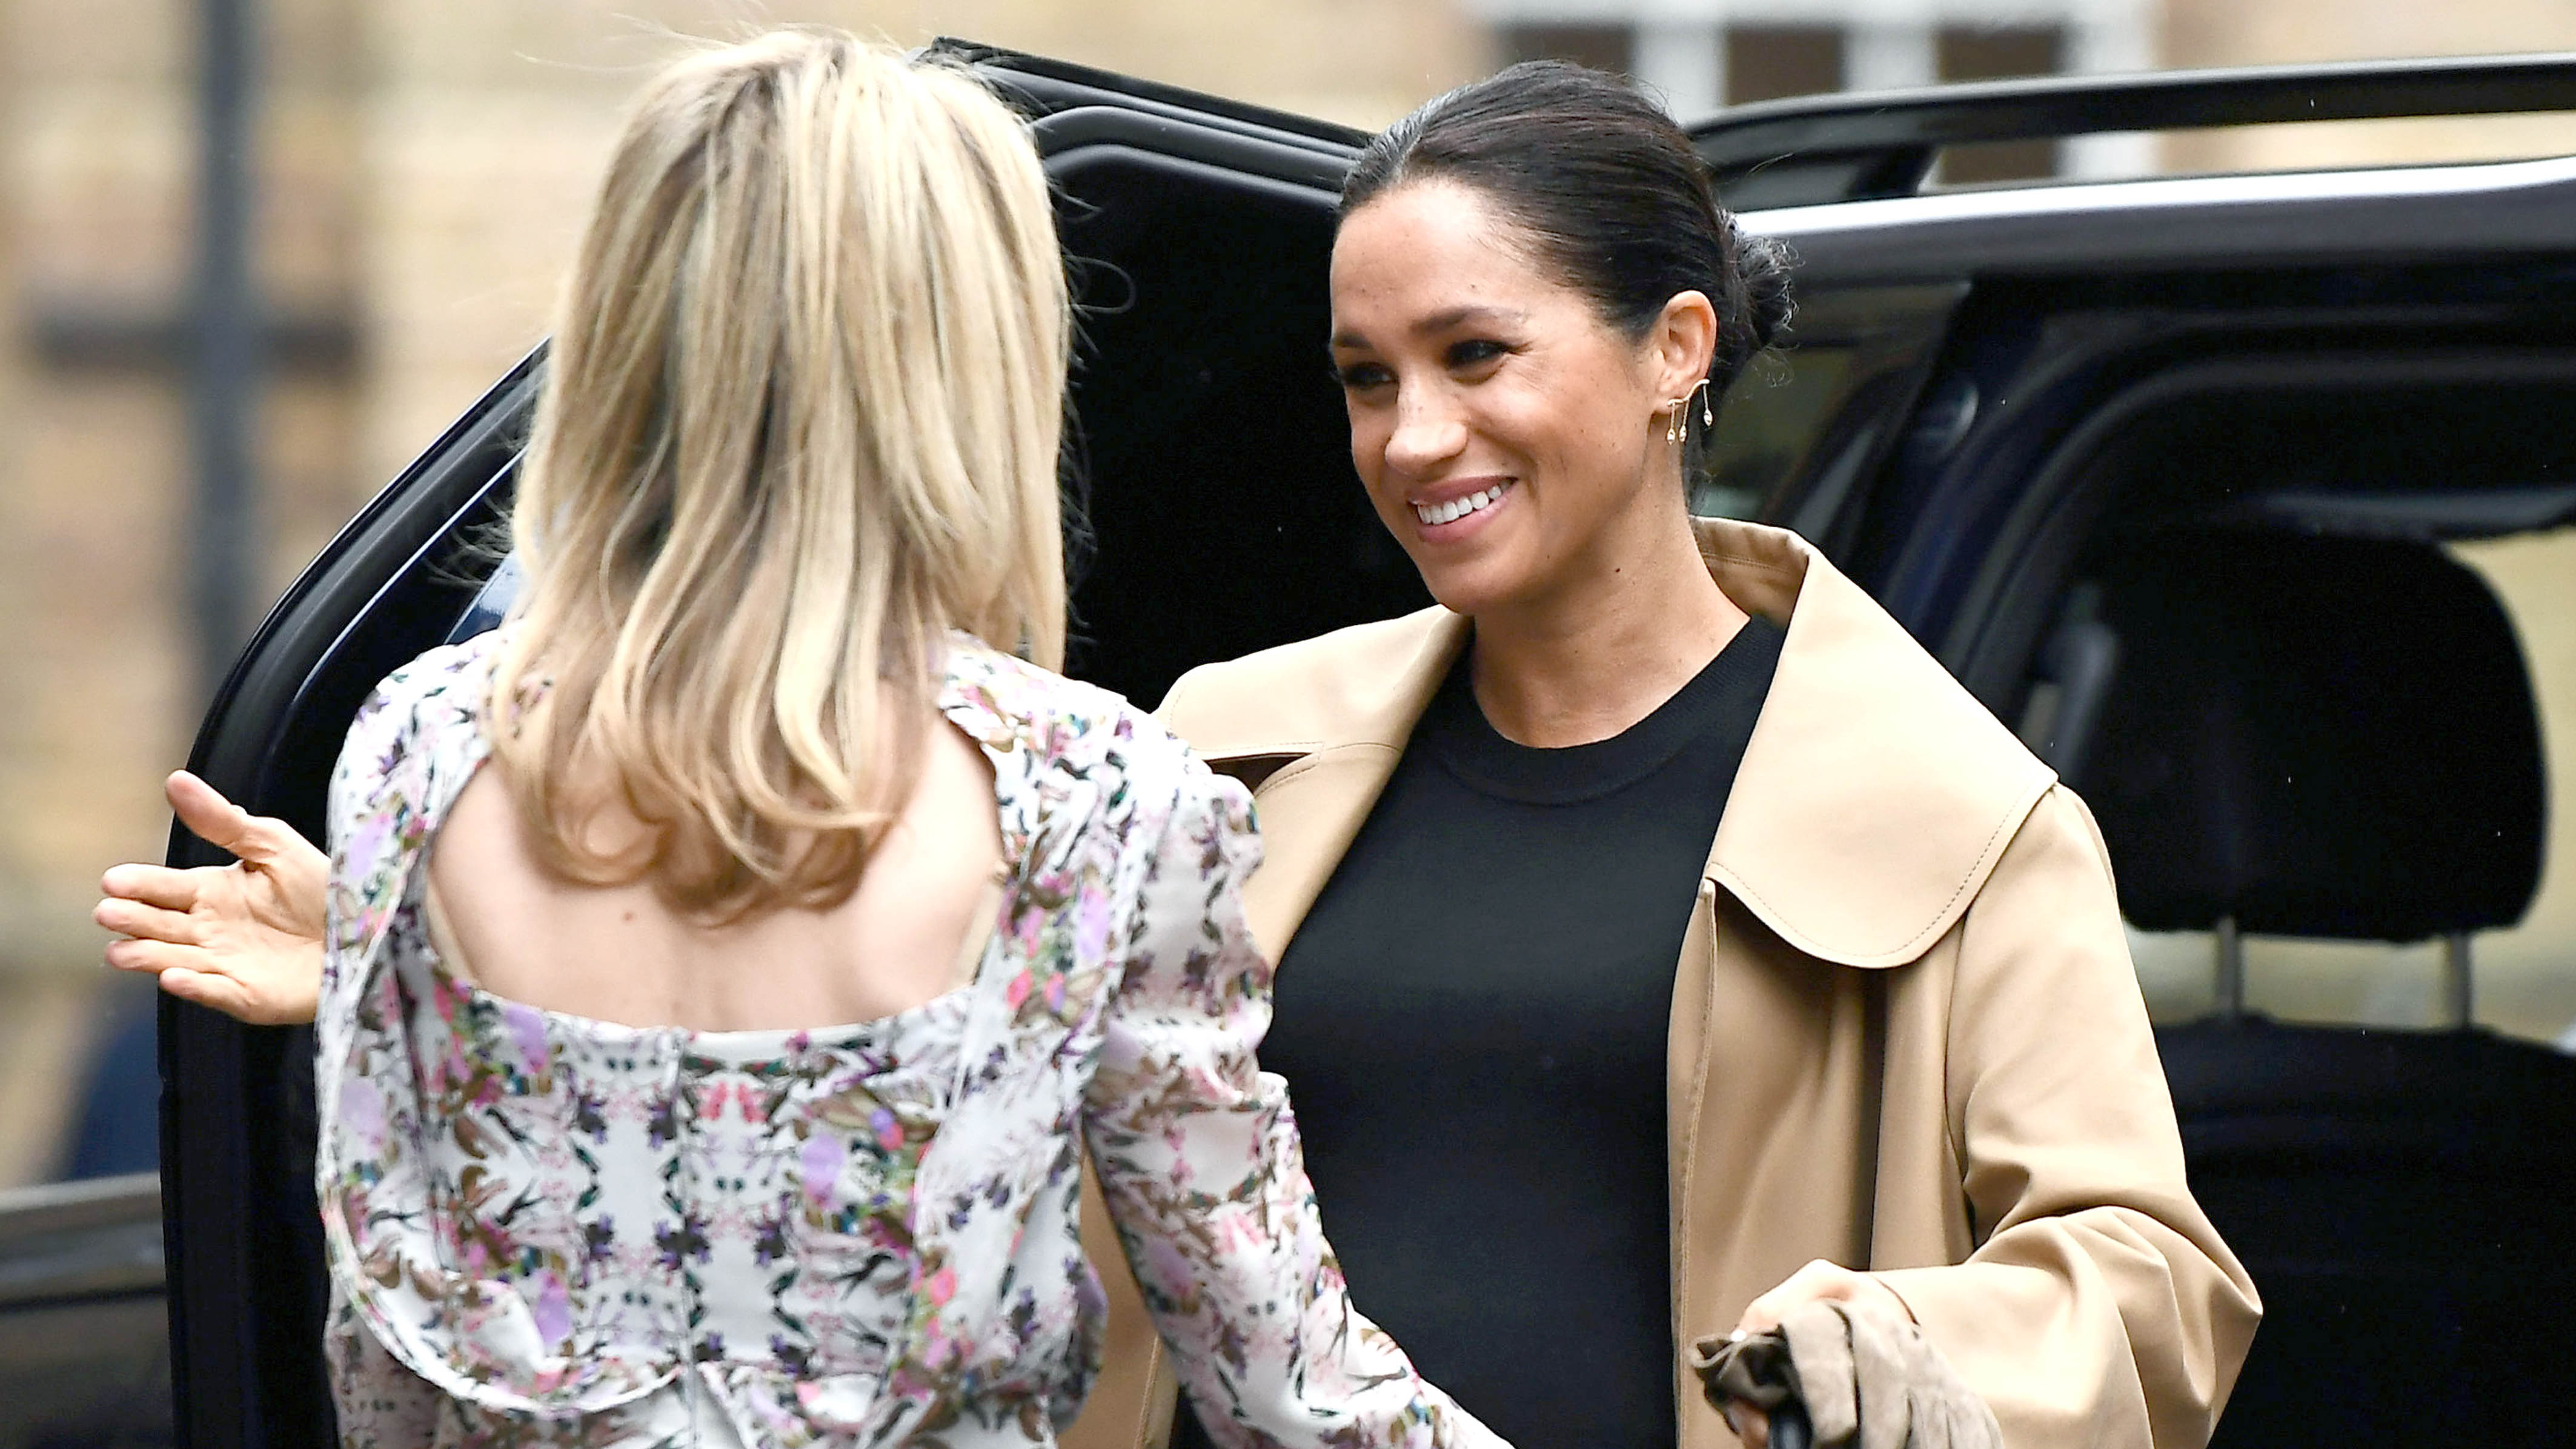 Meghan Markle Spotted Out And About Celebrating Patronages Given By The Queen